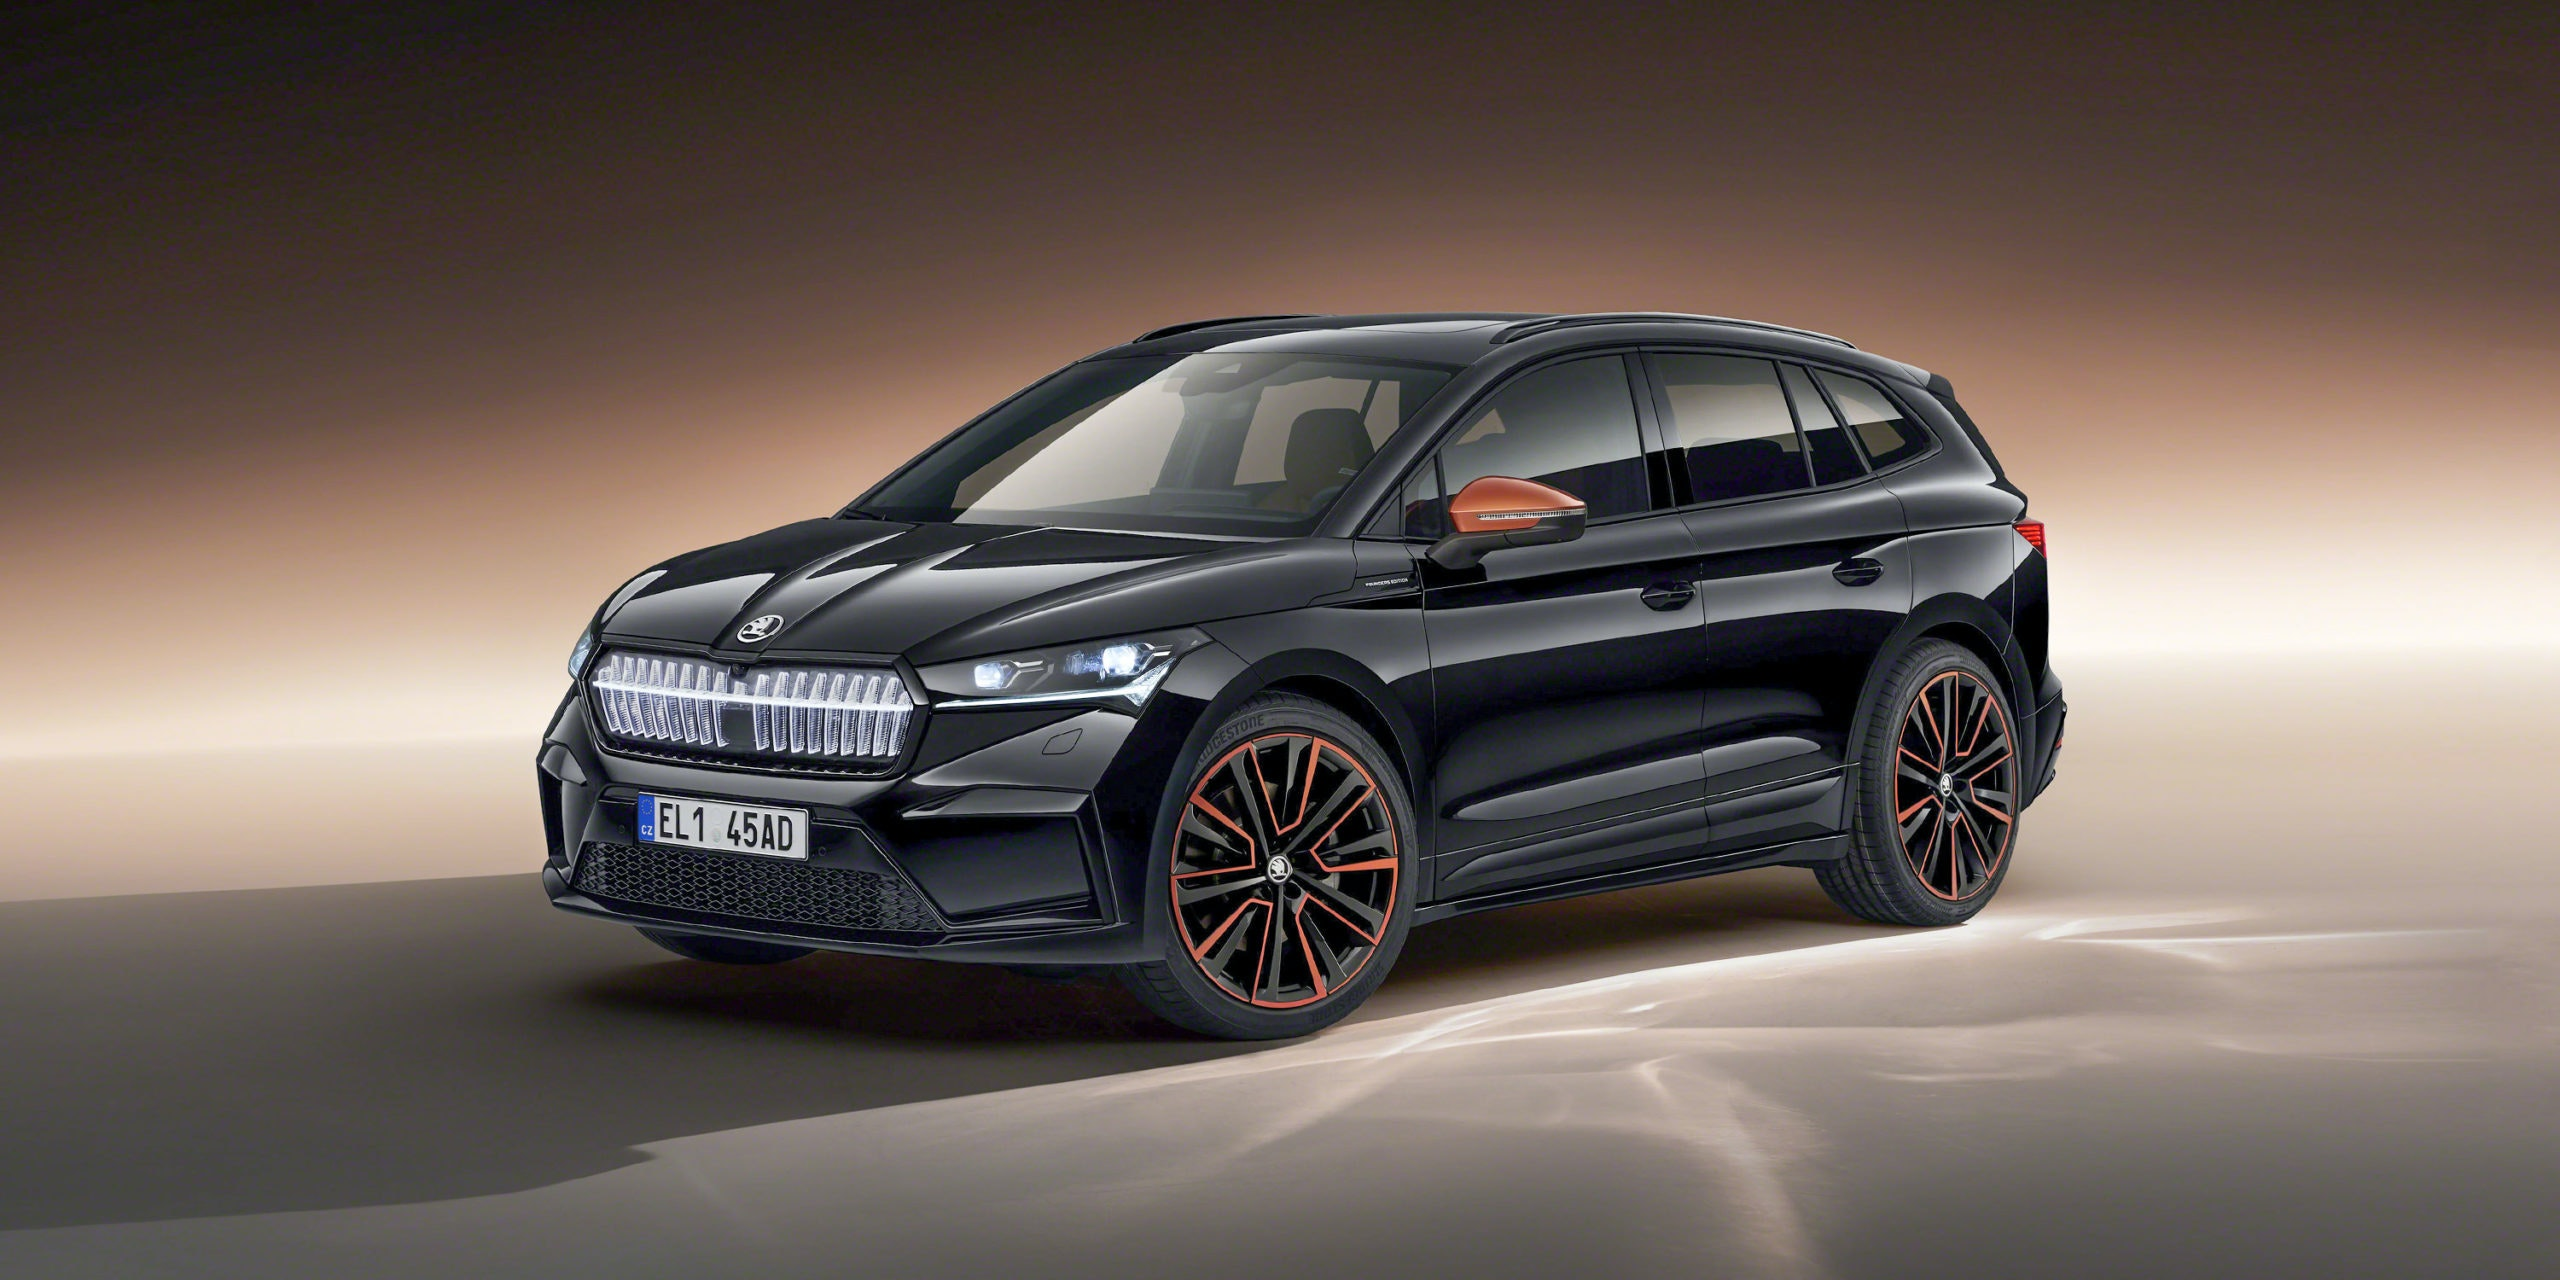 2021 Electric Skoda Enyaq Iv Revealed And Coupe Version Spotted Price Specs And Release Date Carwow